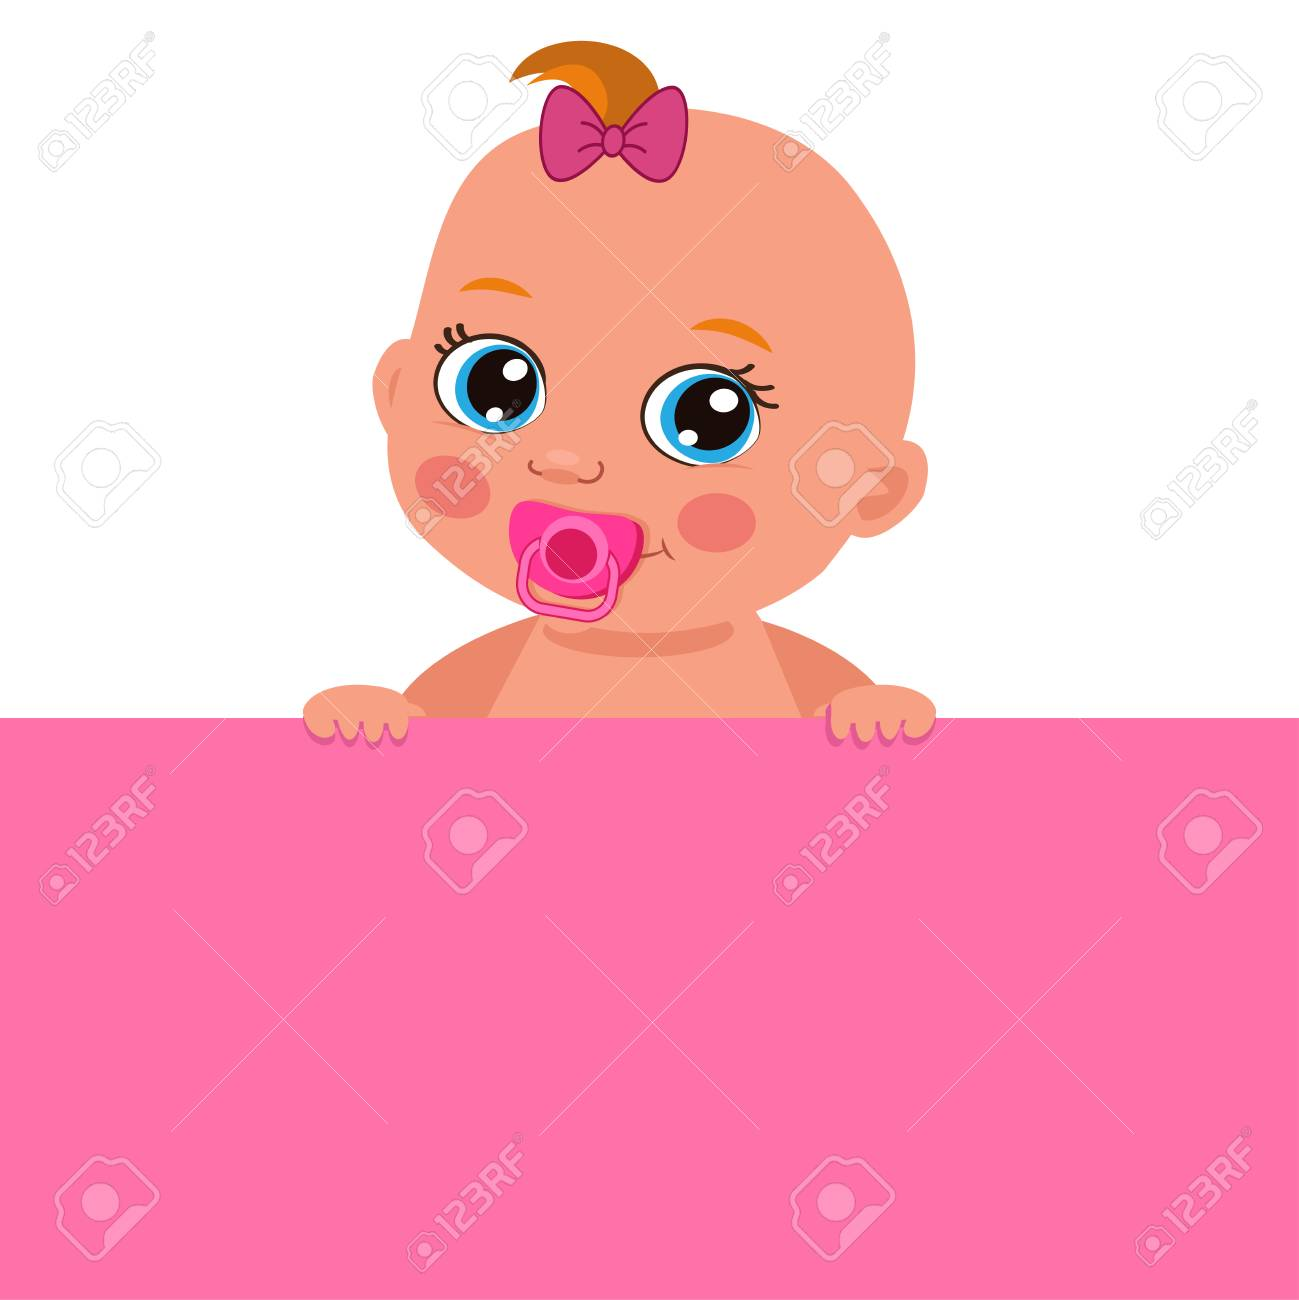 Cute Baby Girl With Blank Banner Vector Illustration Cartoon Royalty Free Cliparts Vectors And Stock Illustration Image 97195803